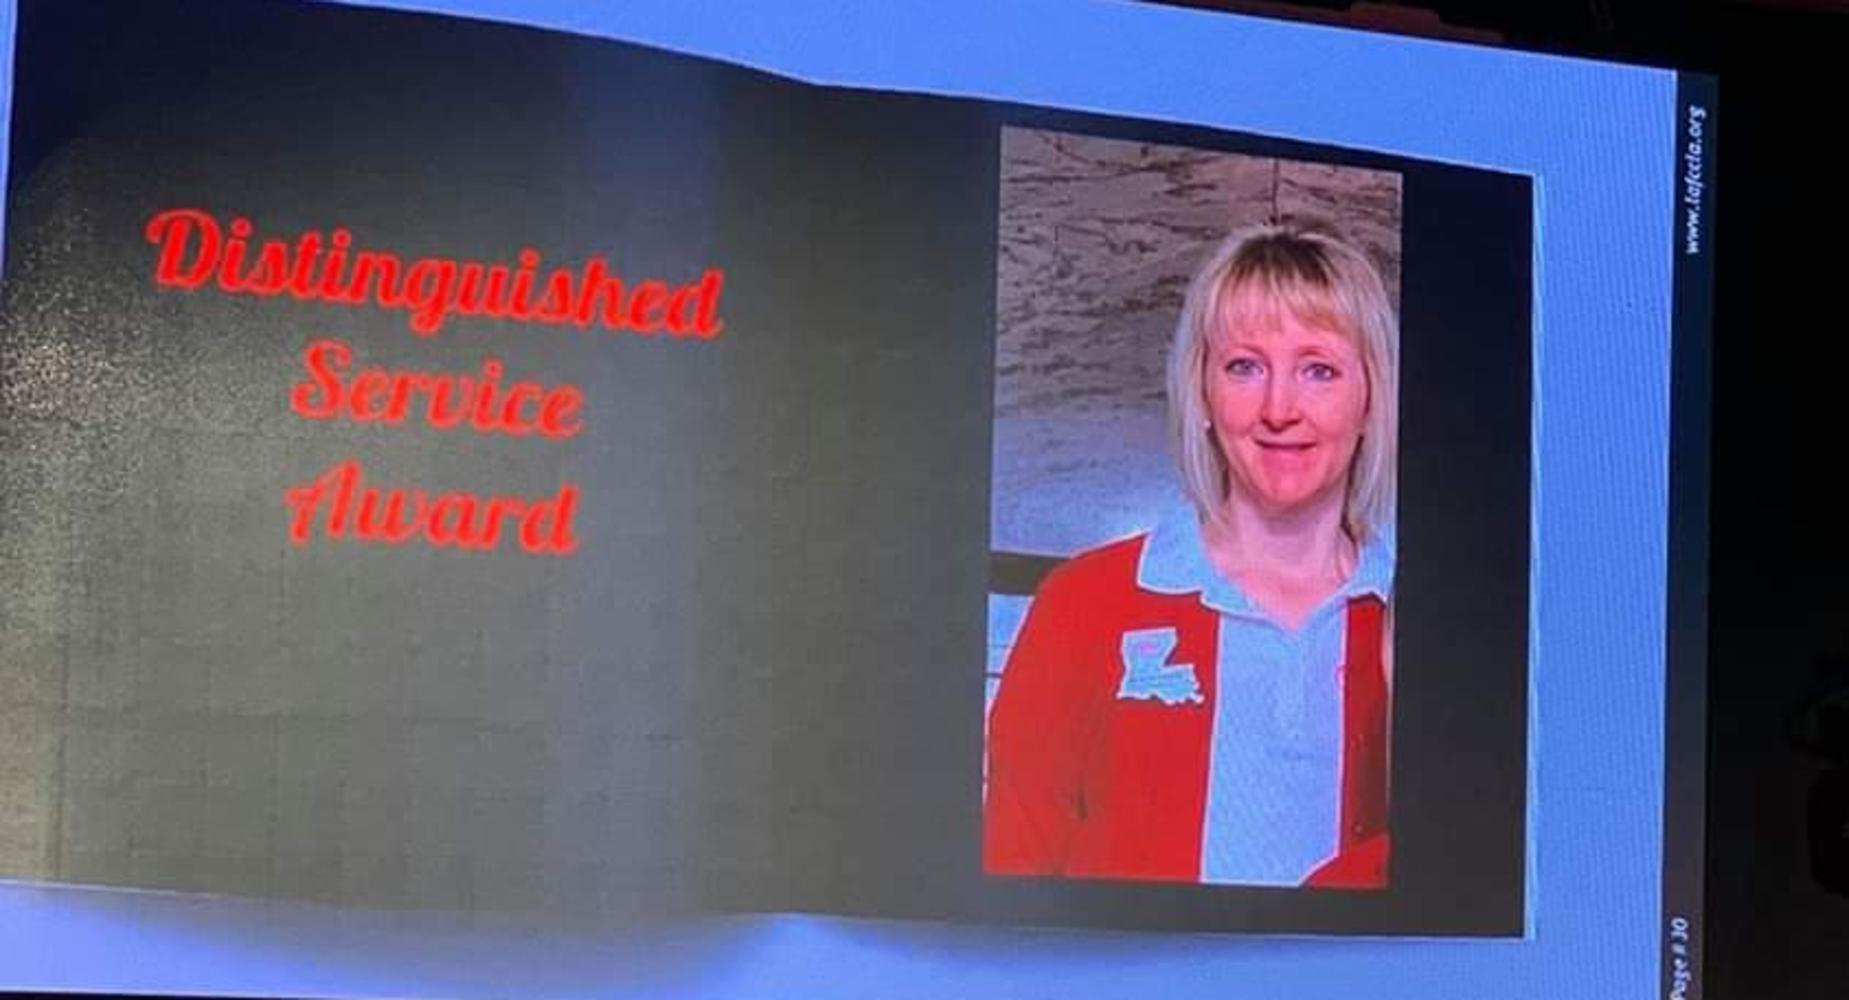 FCCLA-Mrs. Jennifer Hebert received the 2020 Distinguished Service Award at the LA. State Conference in Alexandria.